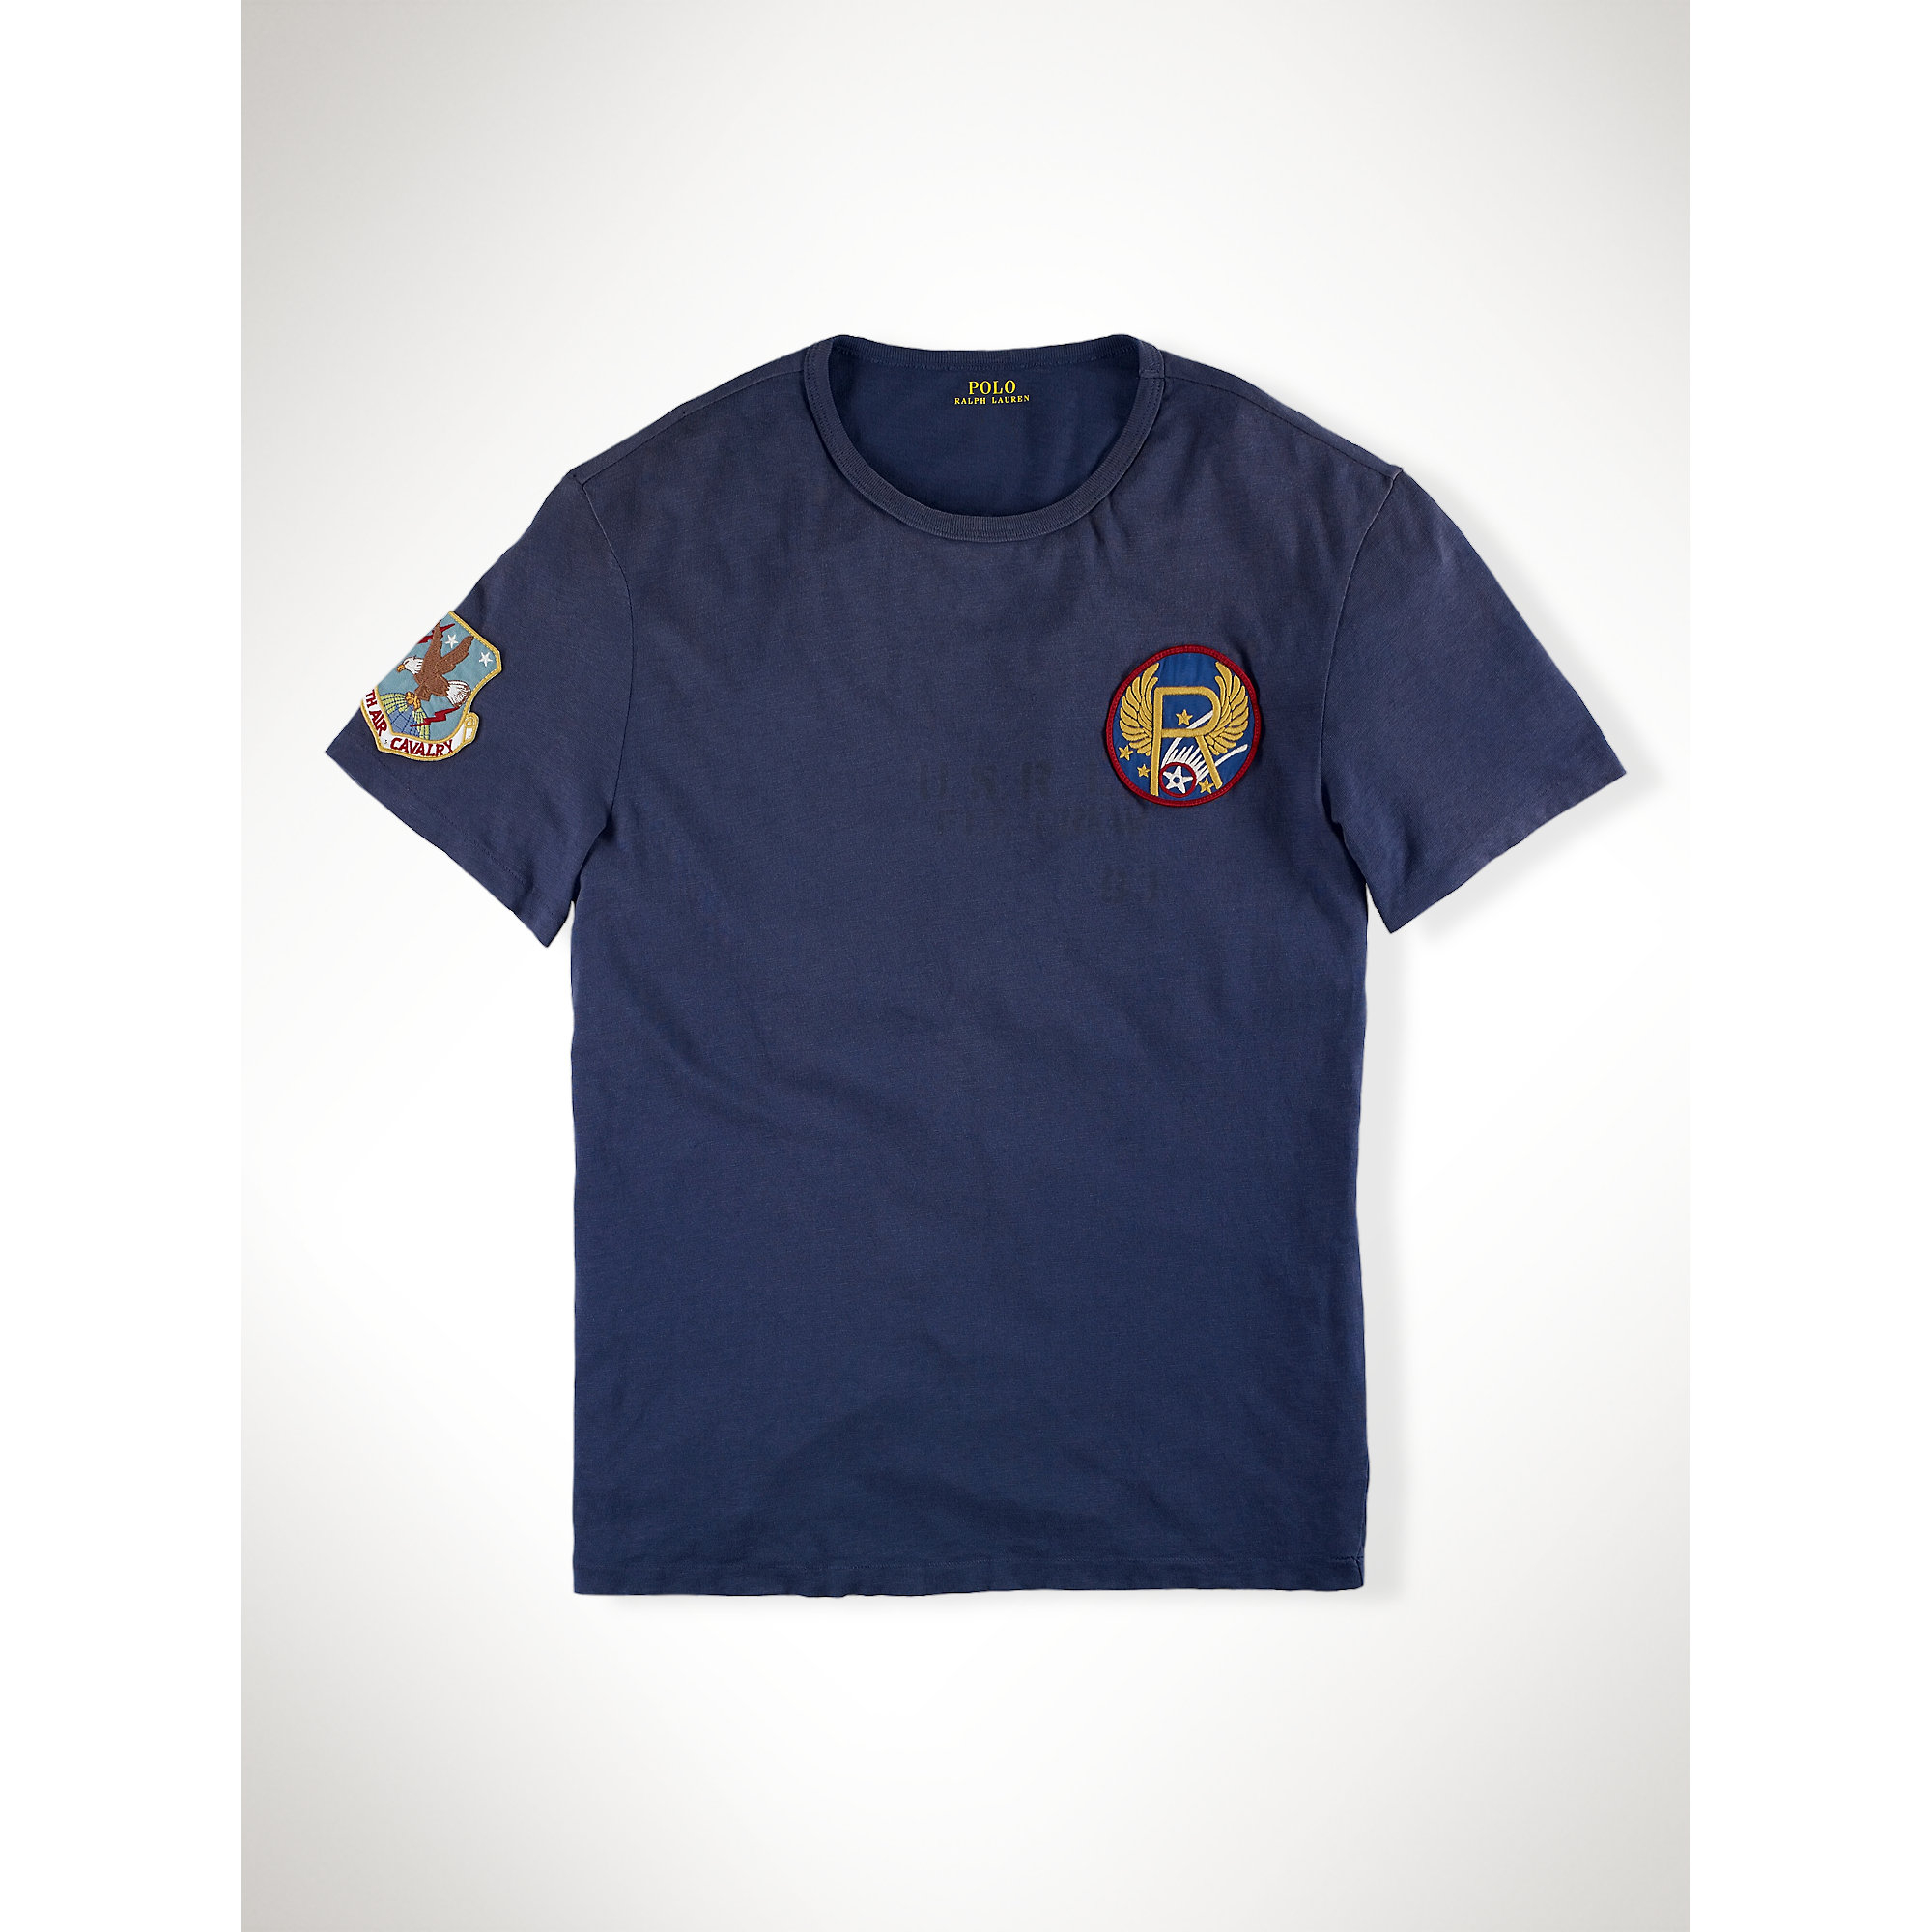 polo ralph lauren custom fit patch t shirt in blue for men